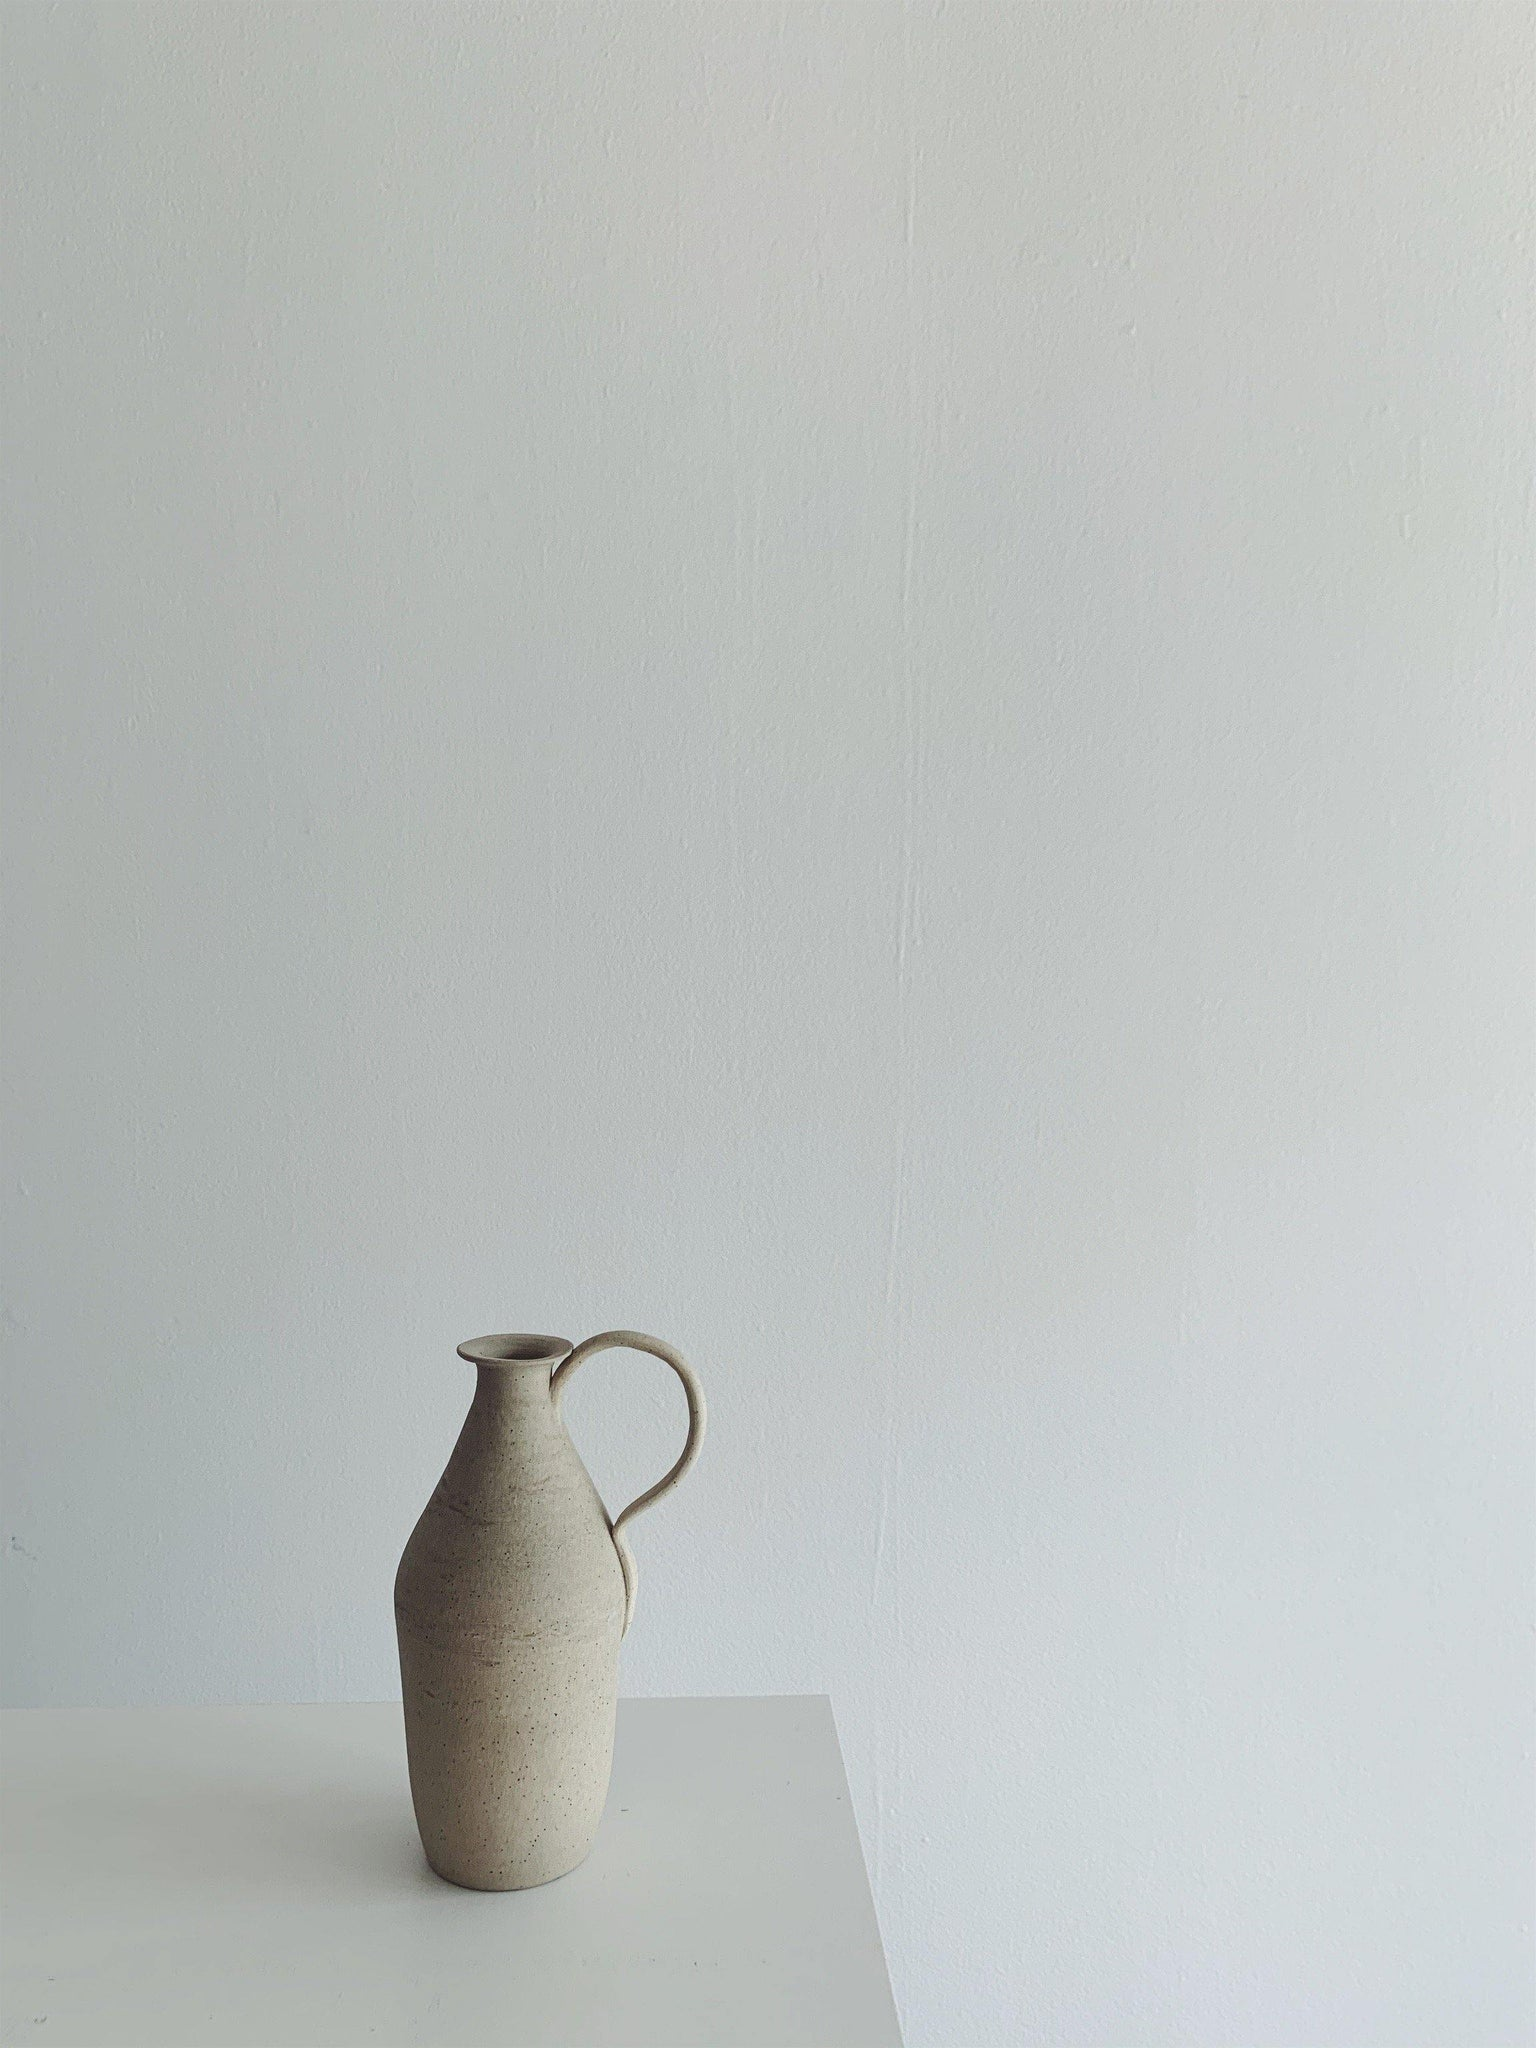 Caitlin Prince Ceramic Vase #2 - Speckled Grey